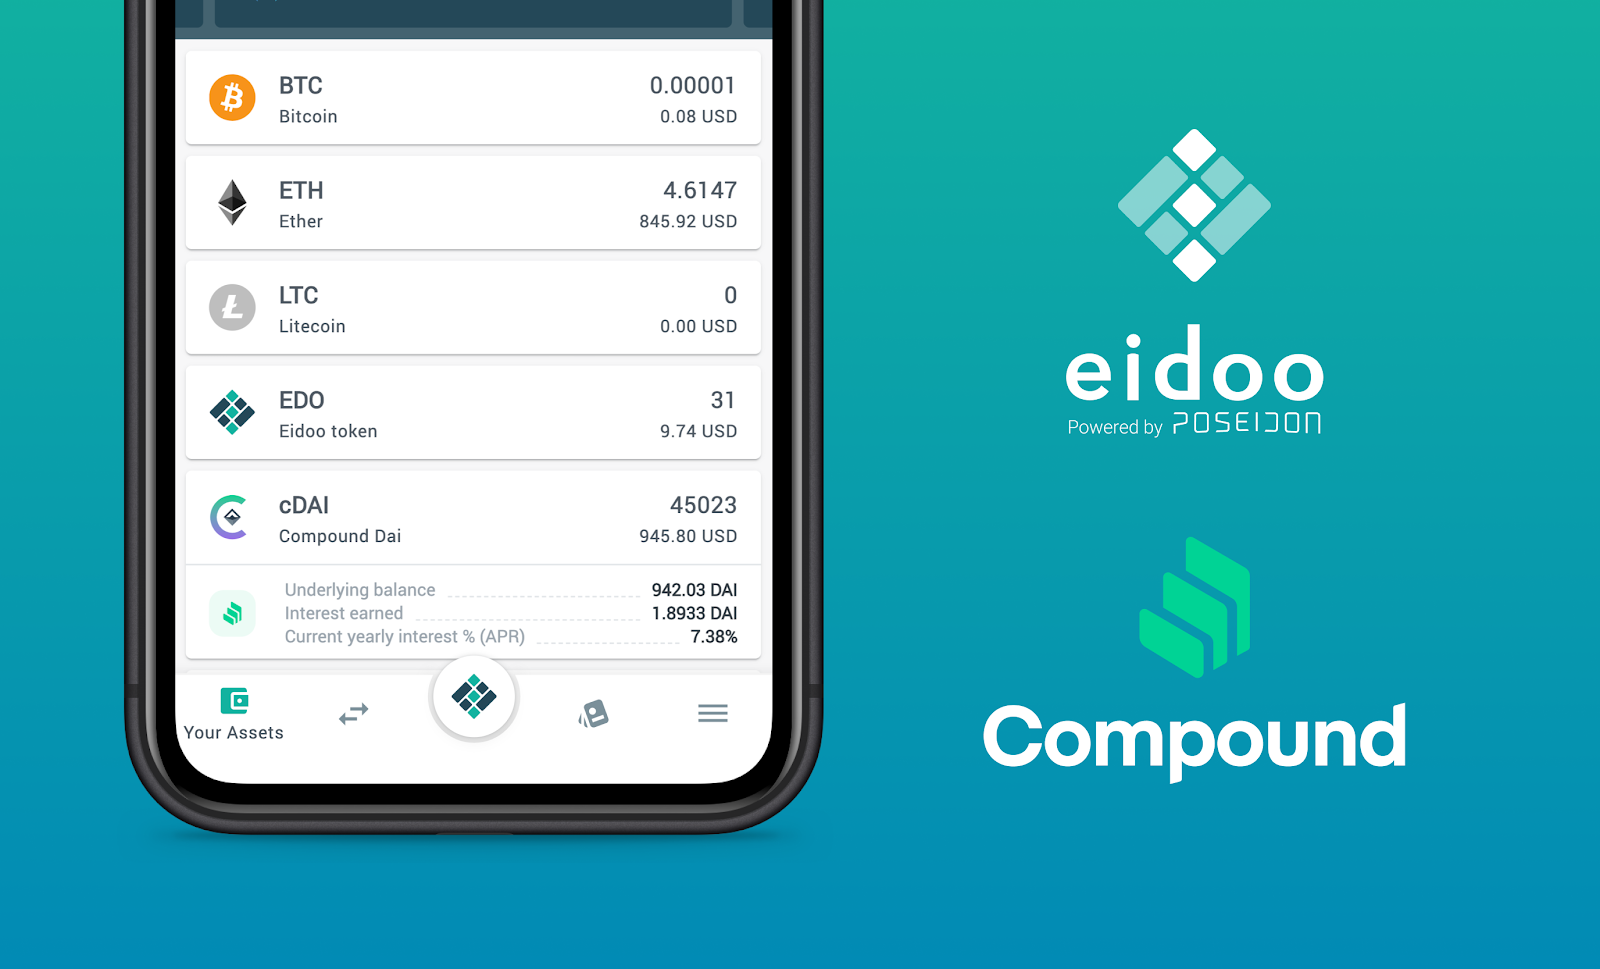 NON LIMITARTI ALL'HODL. PRESTA E GUADAGNA CON COMPOUND E EIDOO